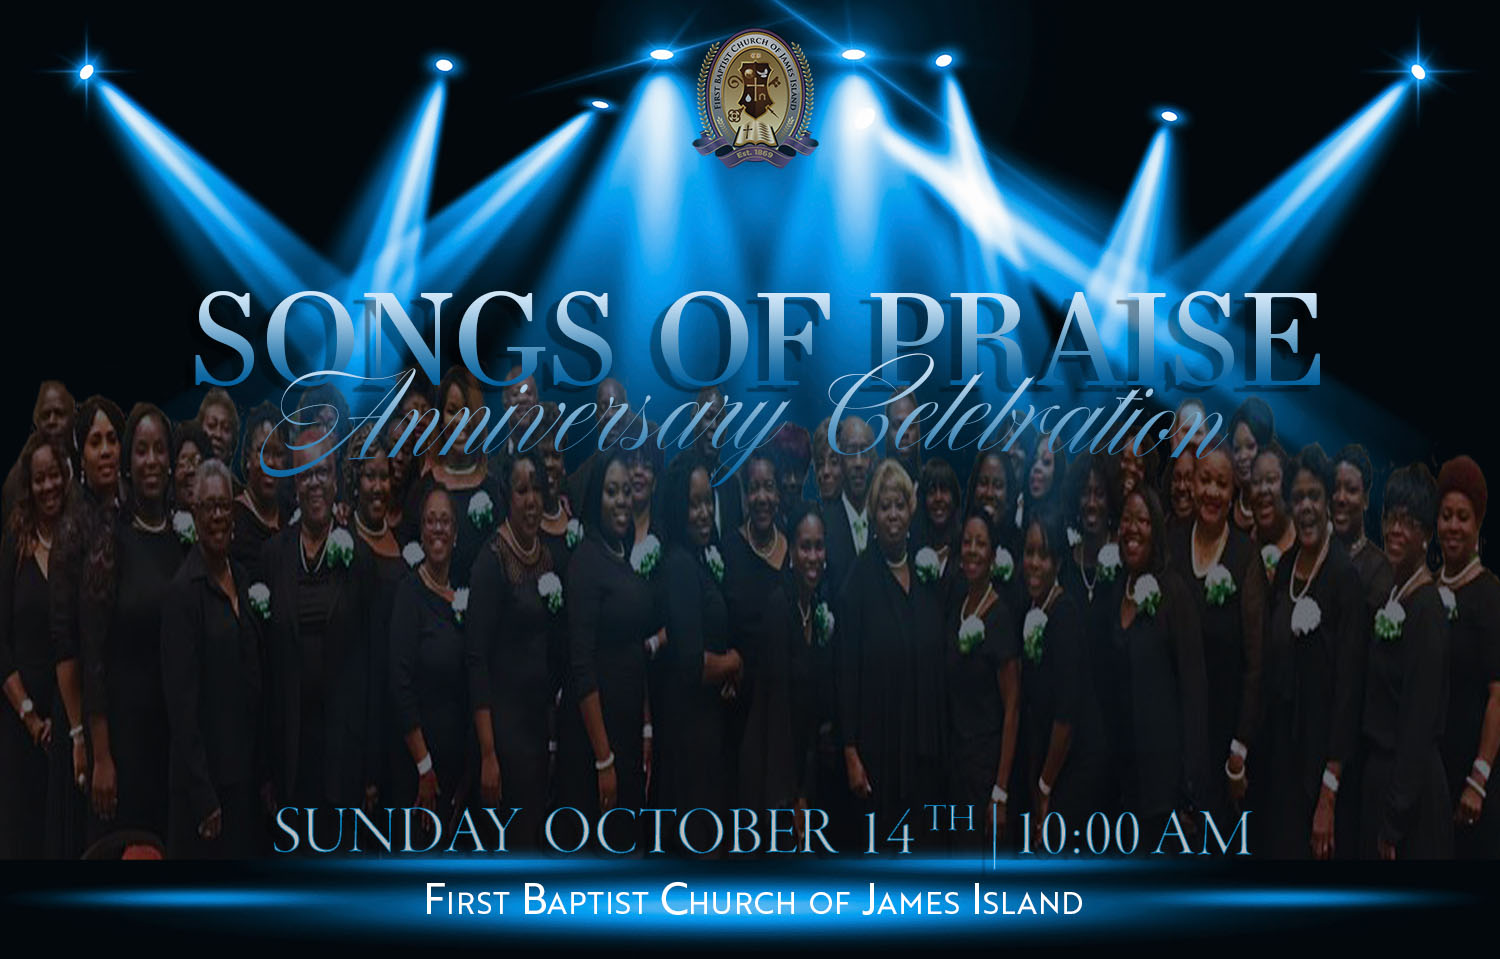 Song of Praise Day 2018